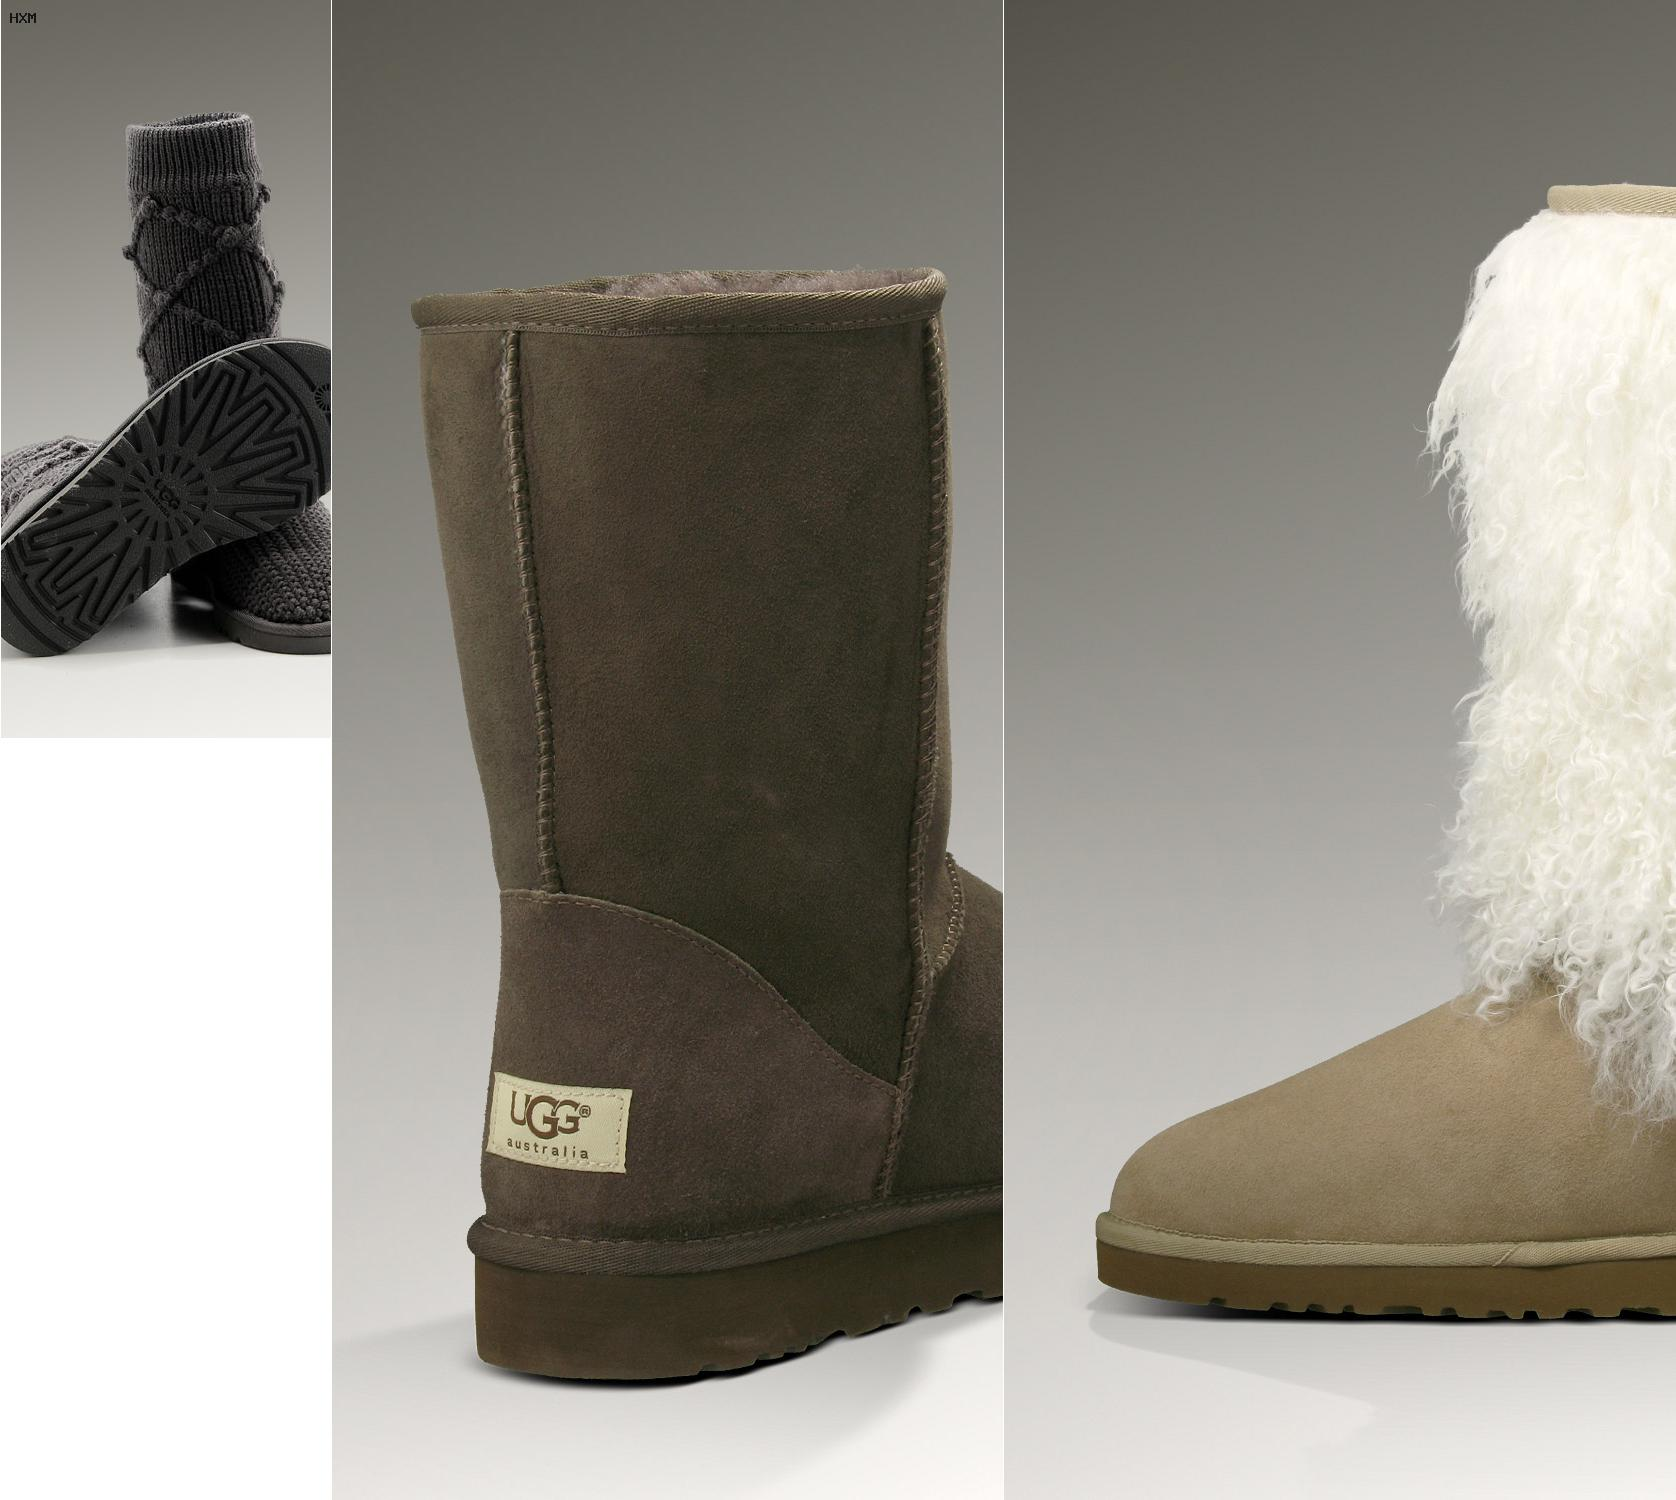 acquisto on line ugg